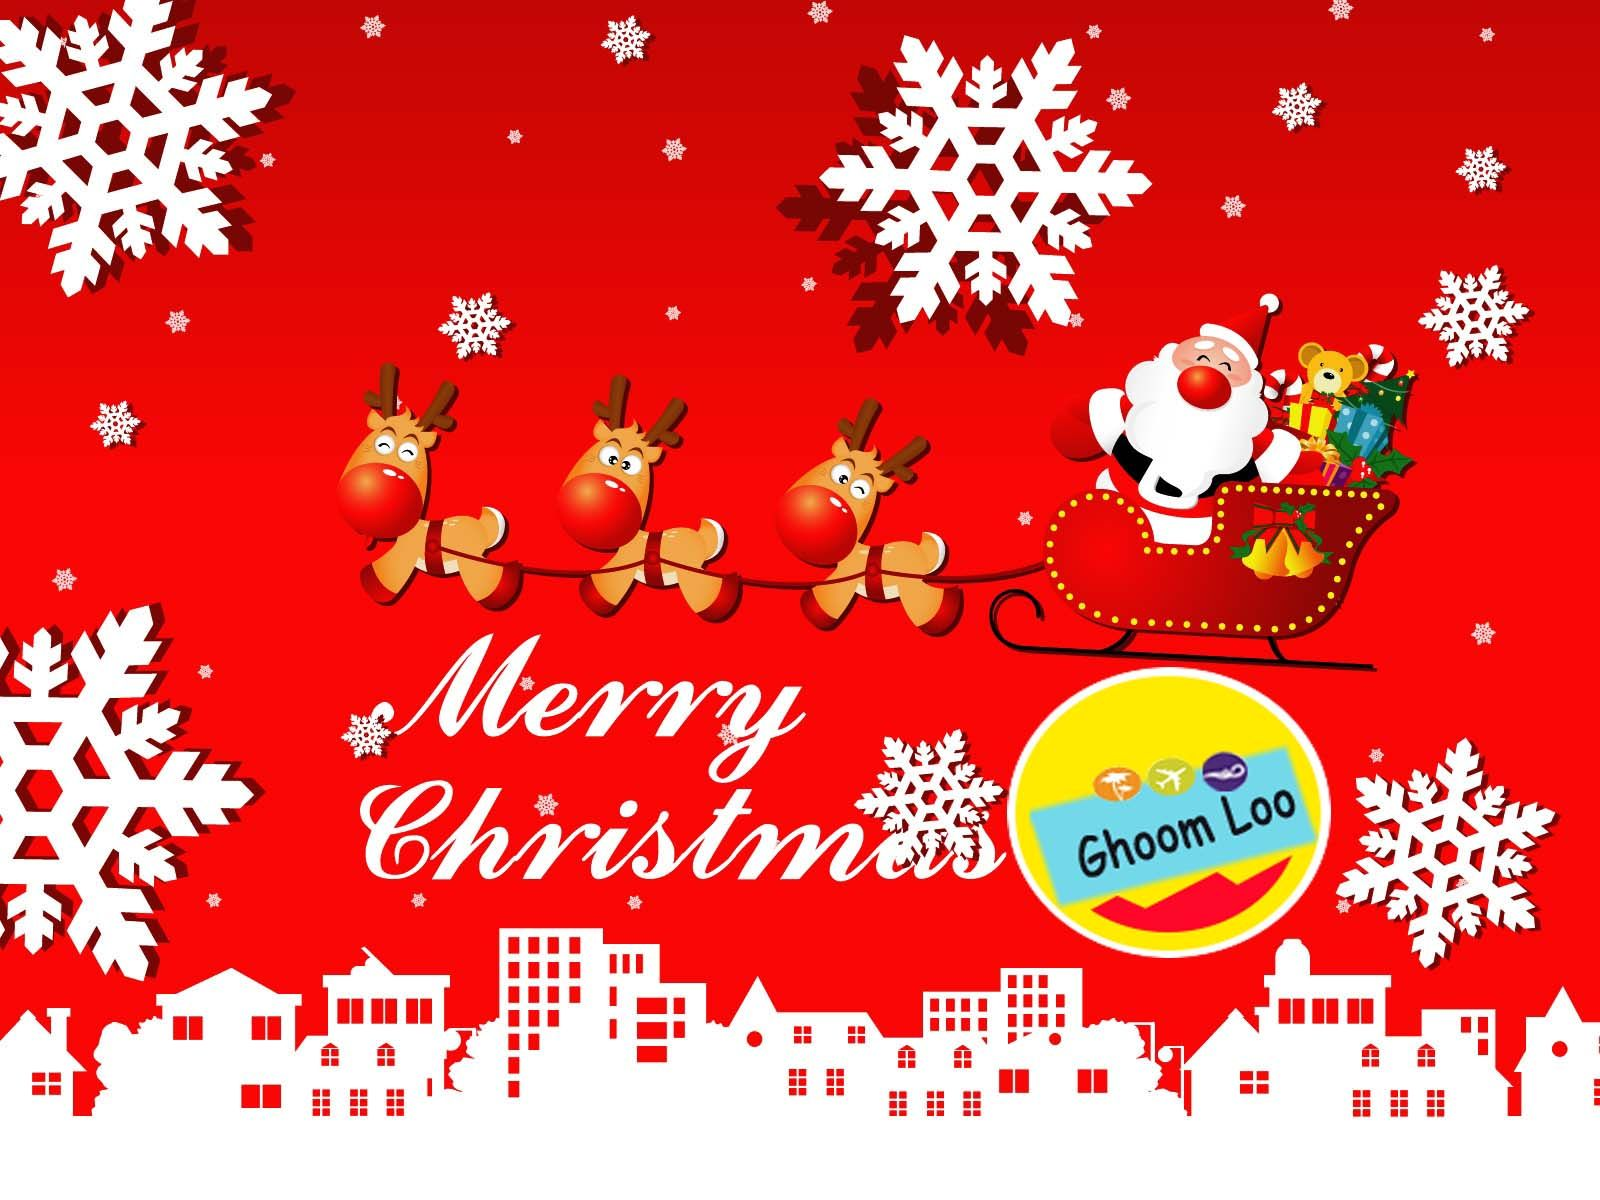 Best wishes for a merry christmas to all my friends merry best wishes for a merry christmas to all my friends kristyandbryce Gallery